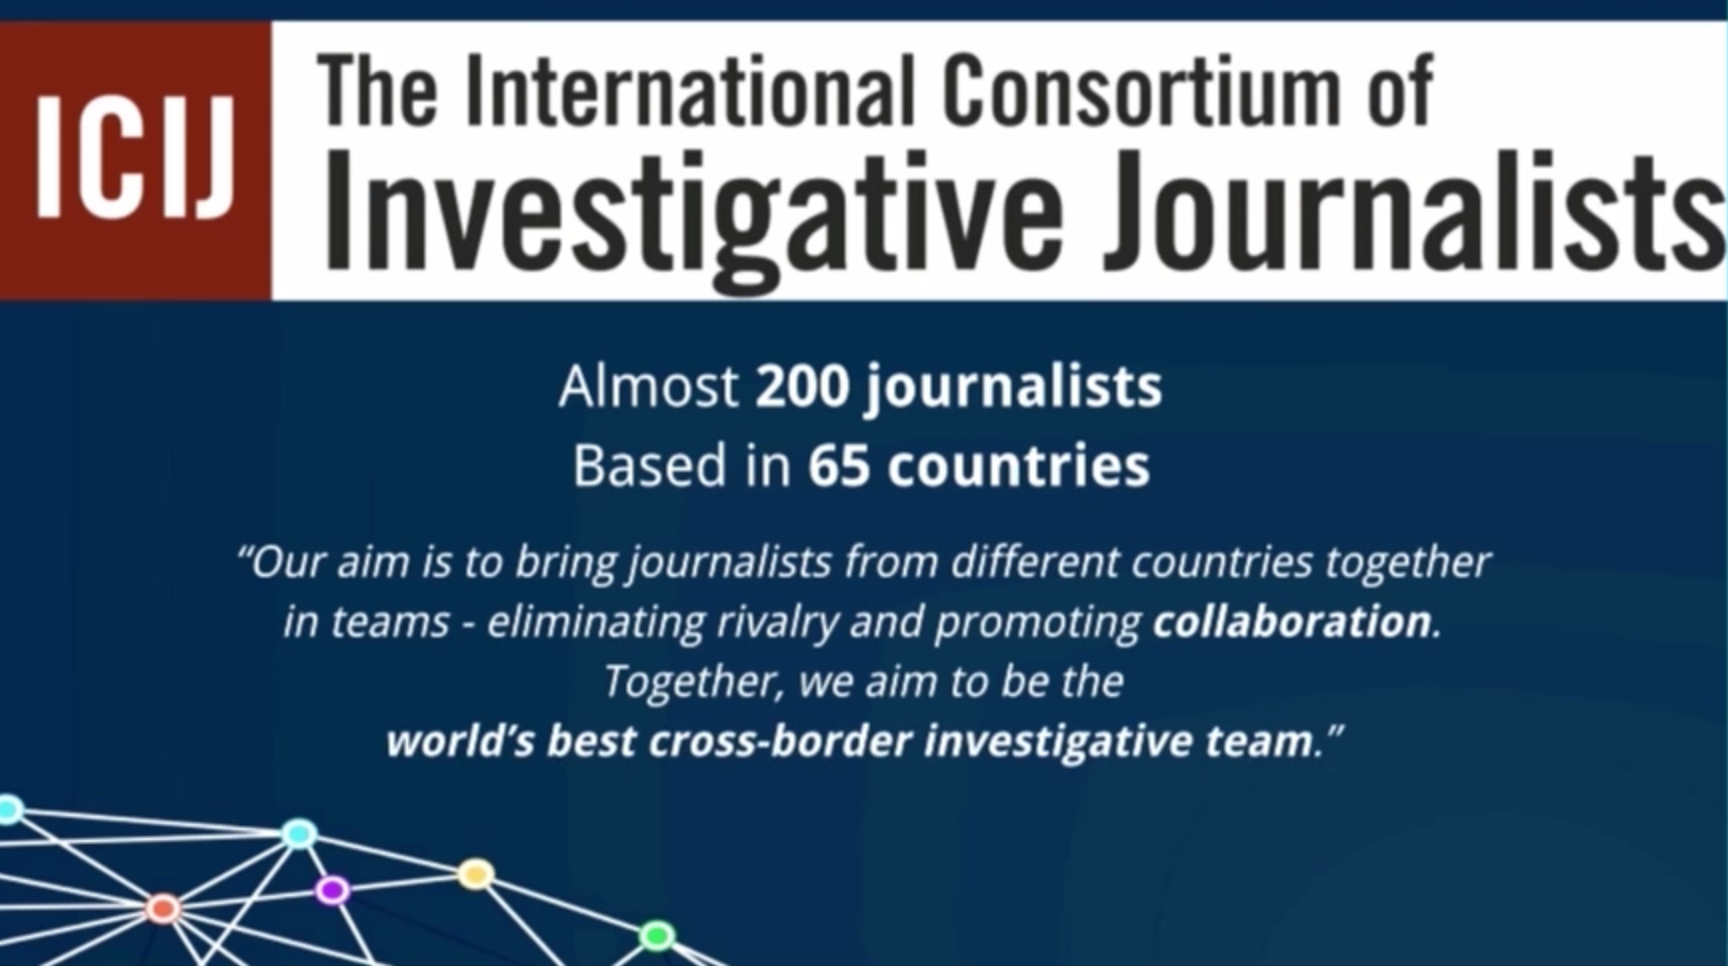 The International Consortium of Investigative Journalists (ICIJ)